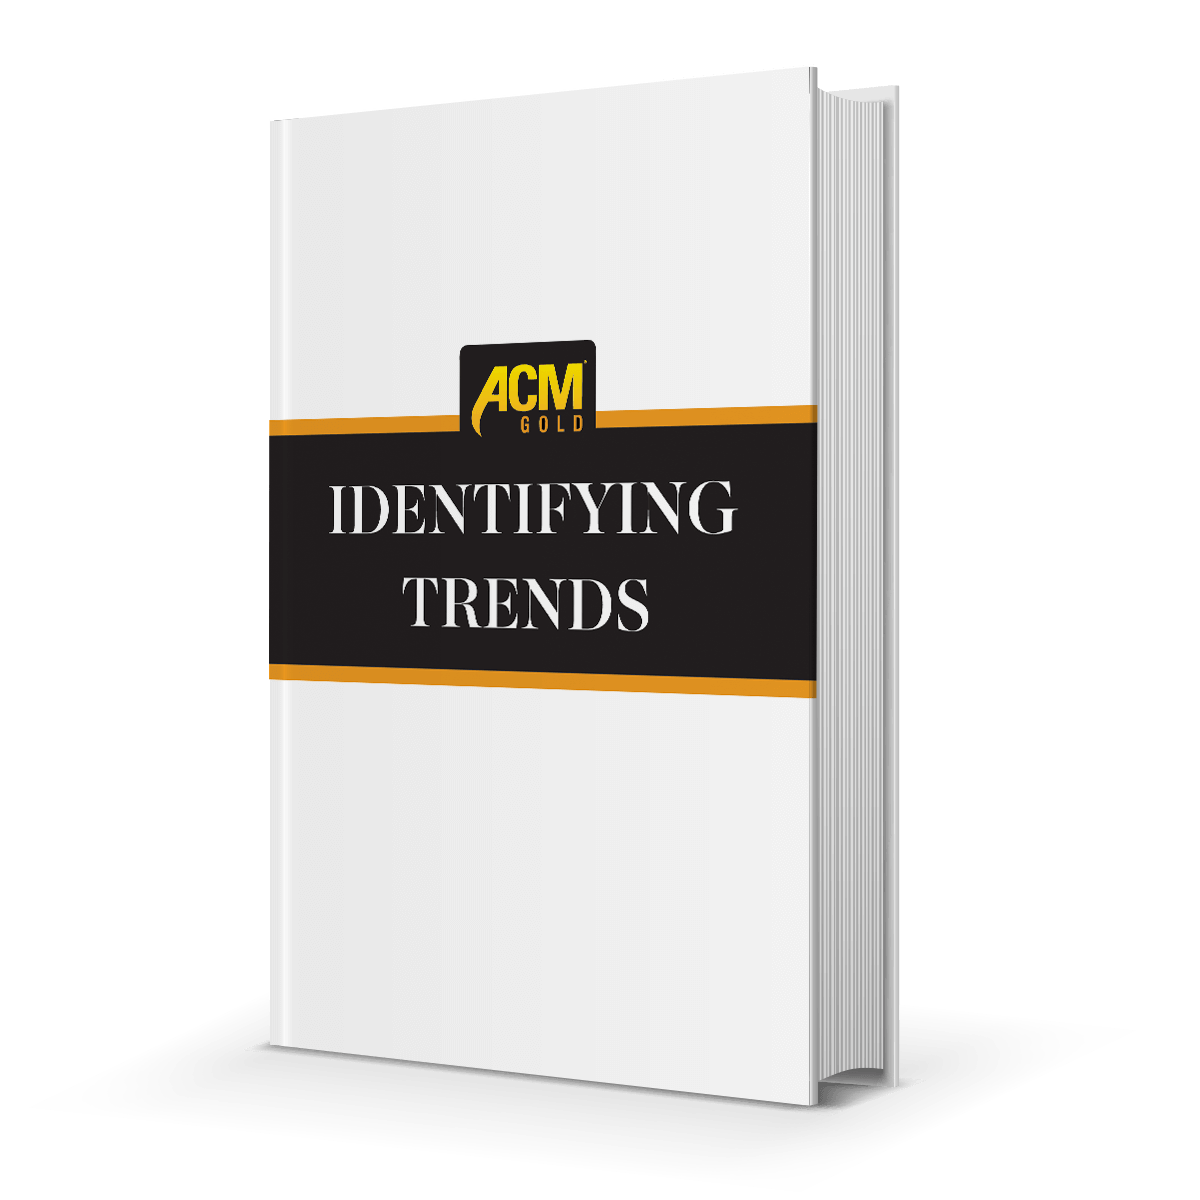 Identifying Trends (2) - Copy-1.png